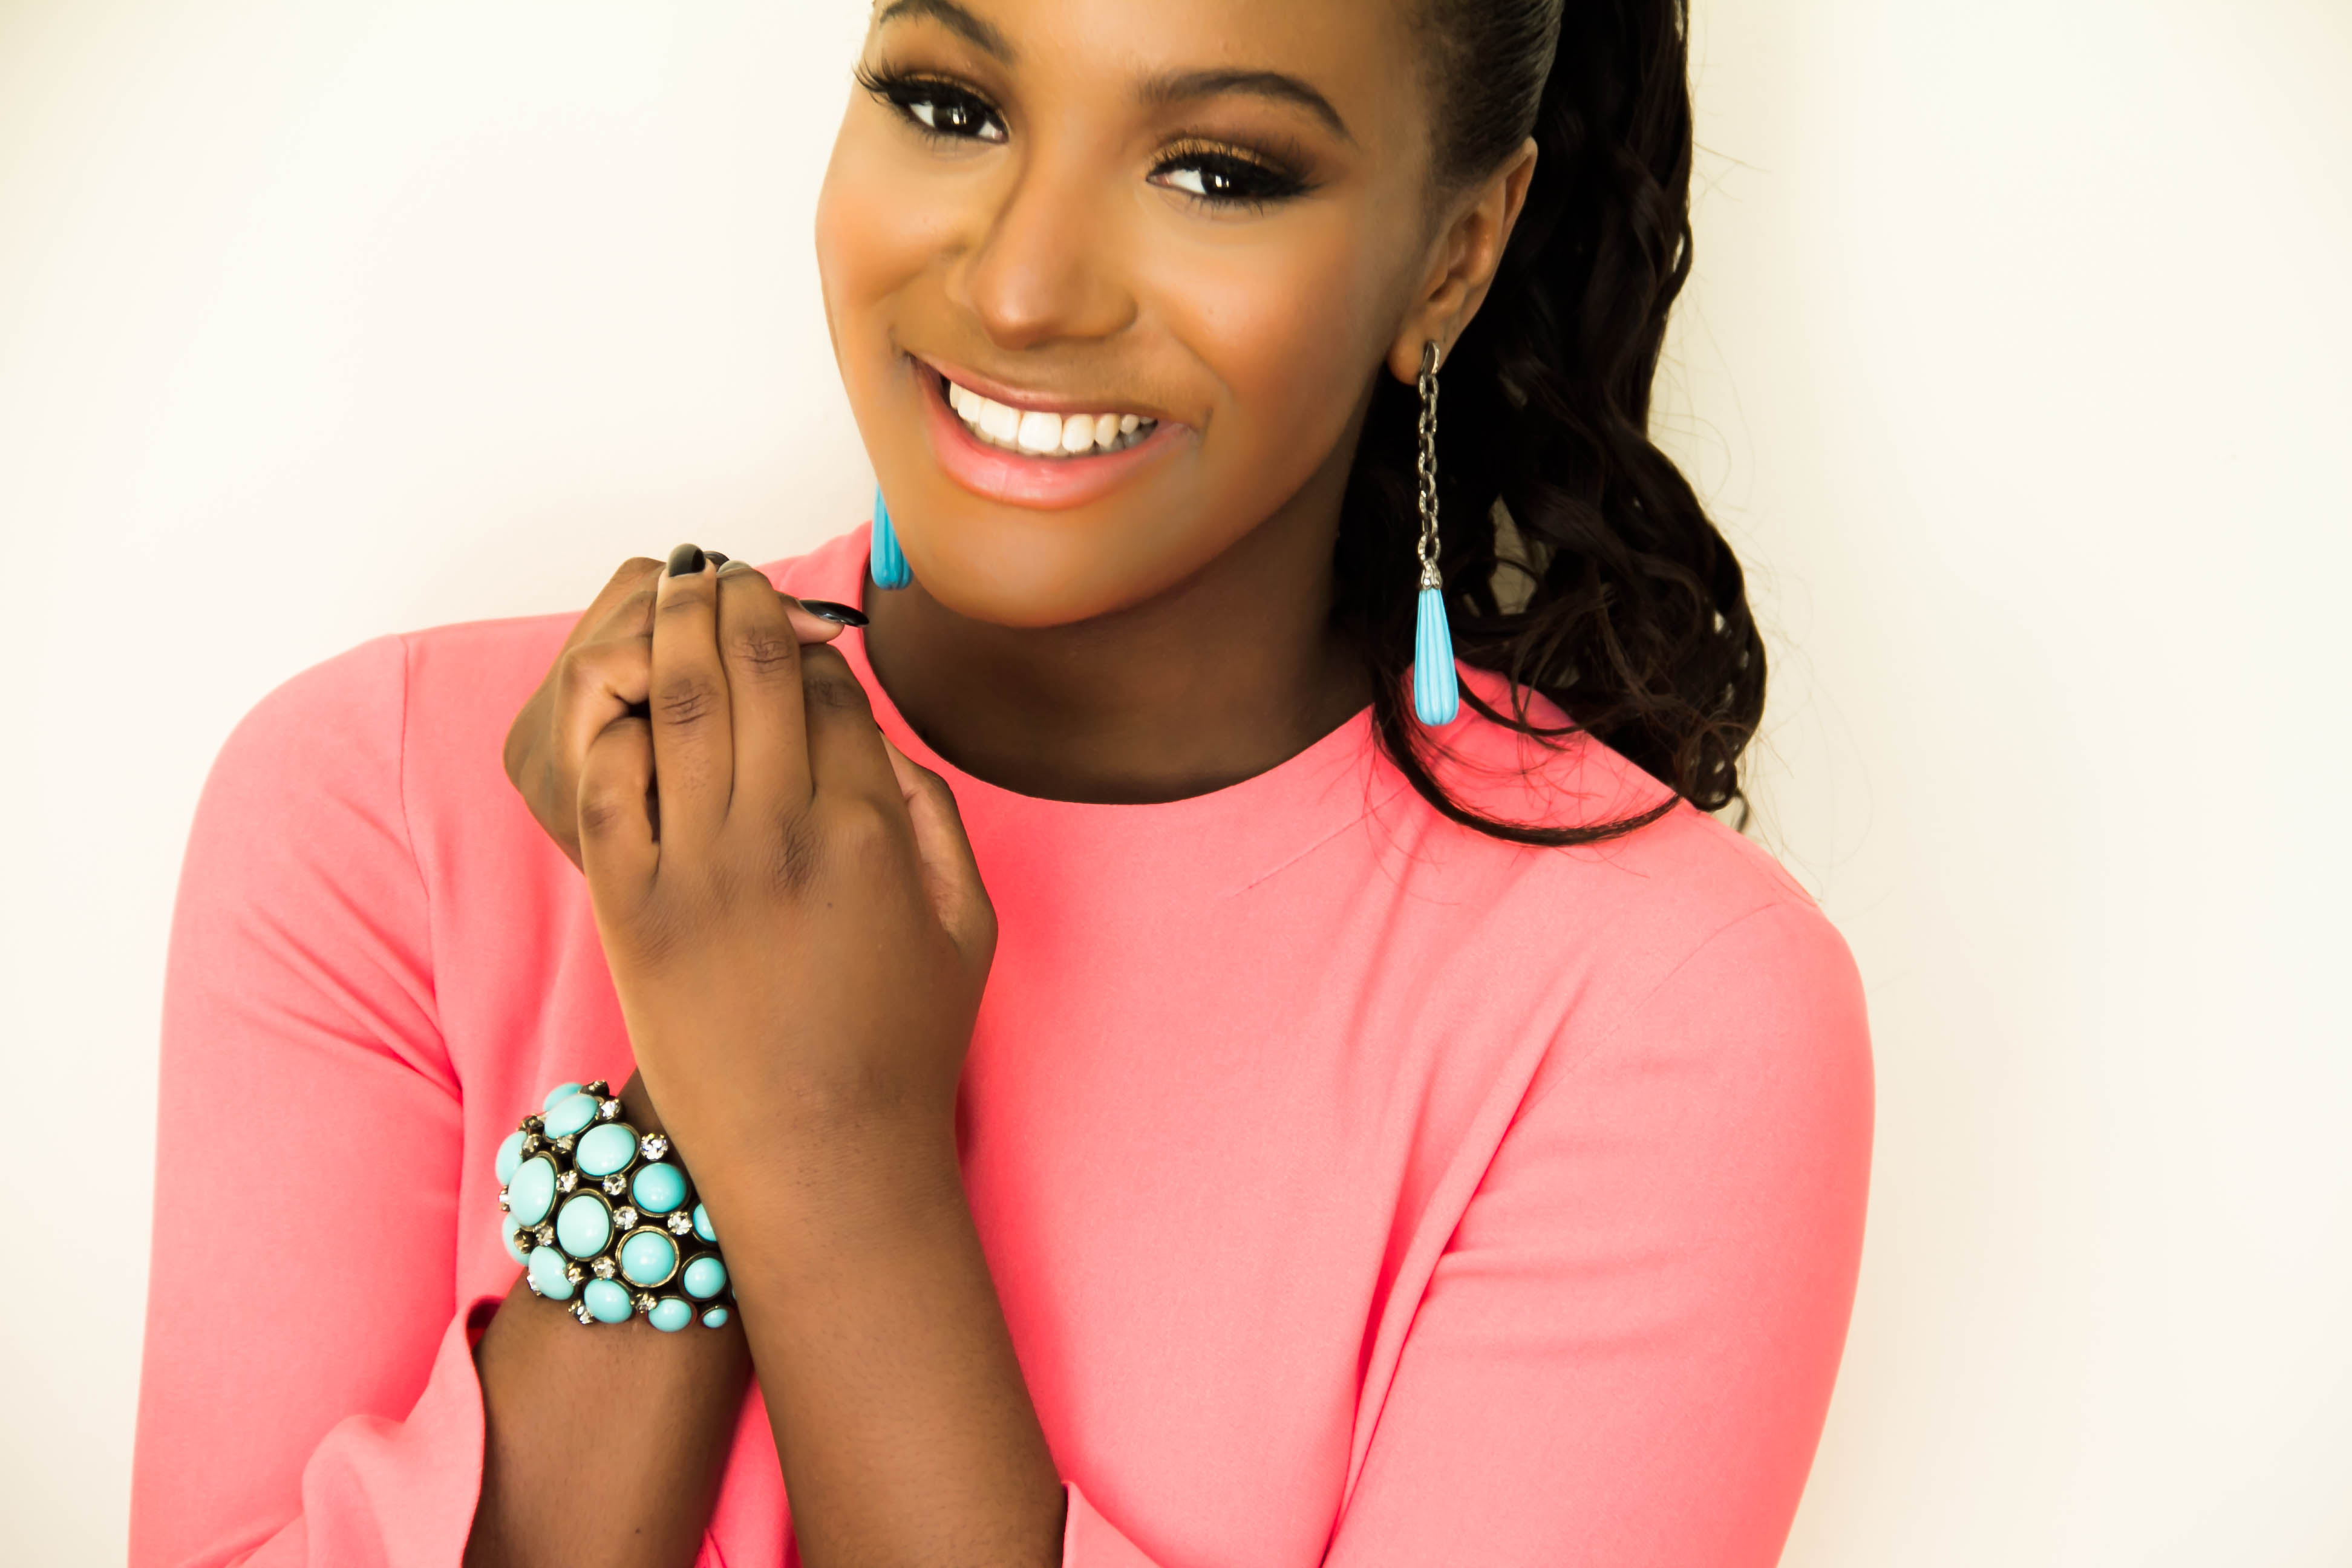 dj cuppy meet dj cuppy a producer songwriter tourism